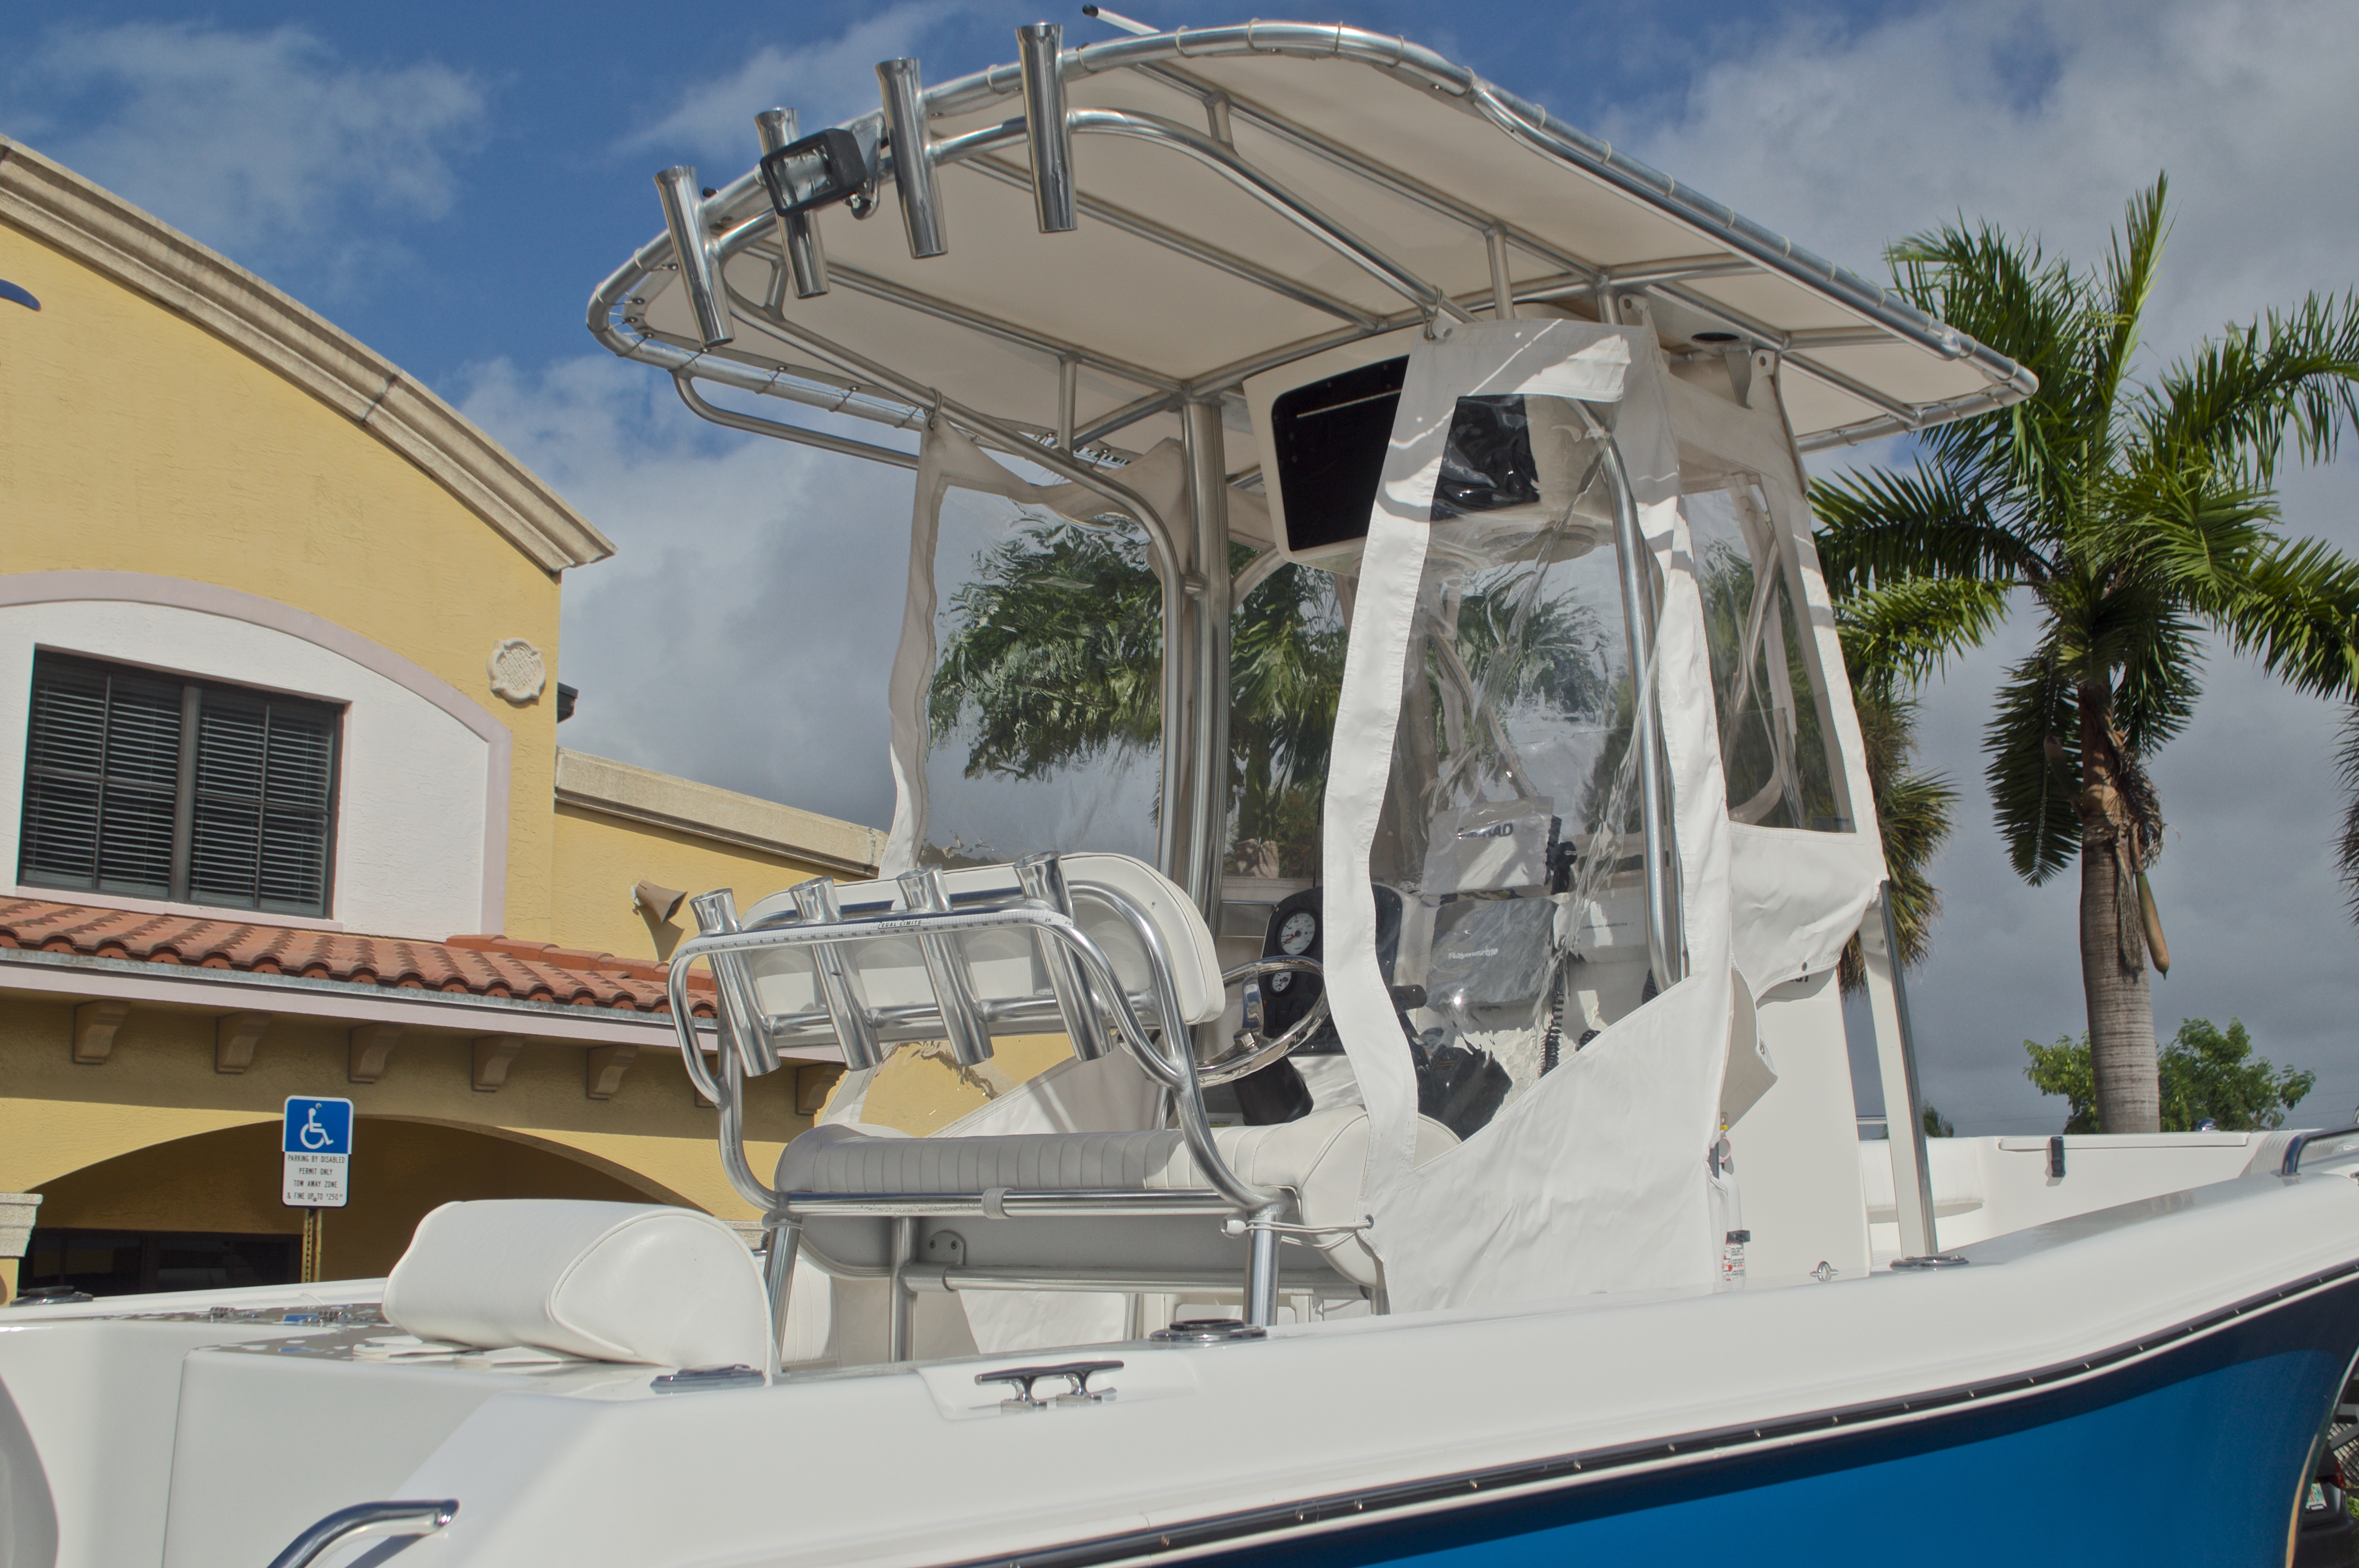 Thumbnail 11 for Used 2009 Sea Hunt 207 Triton boat for sale in West Palm Beach, FL